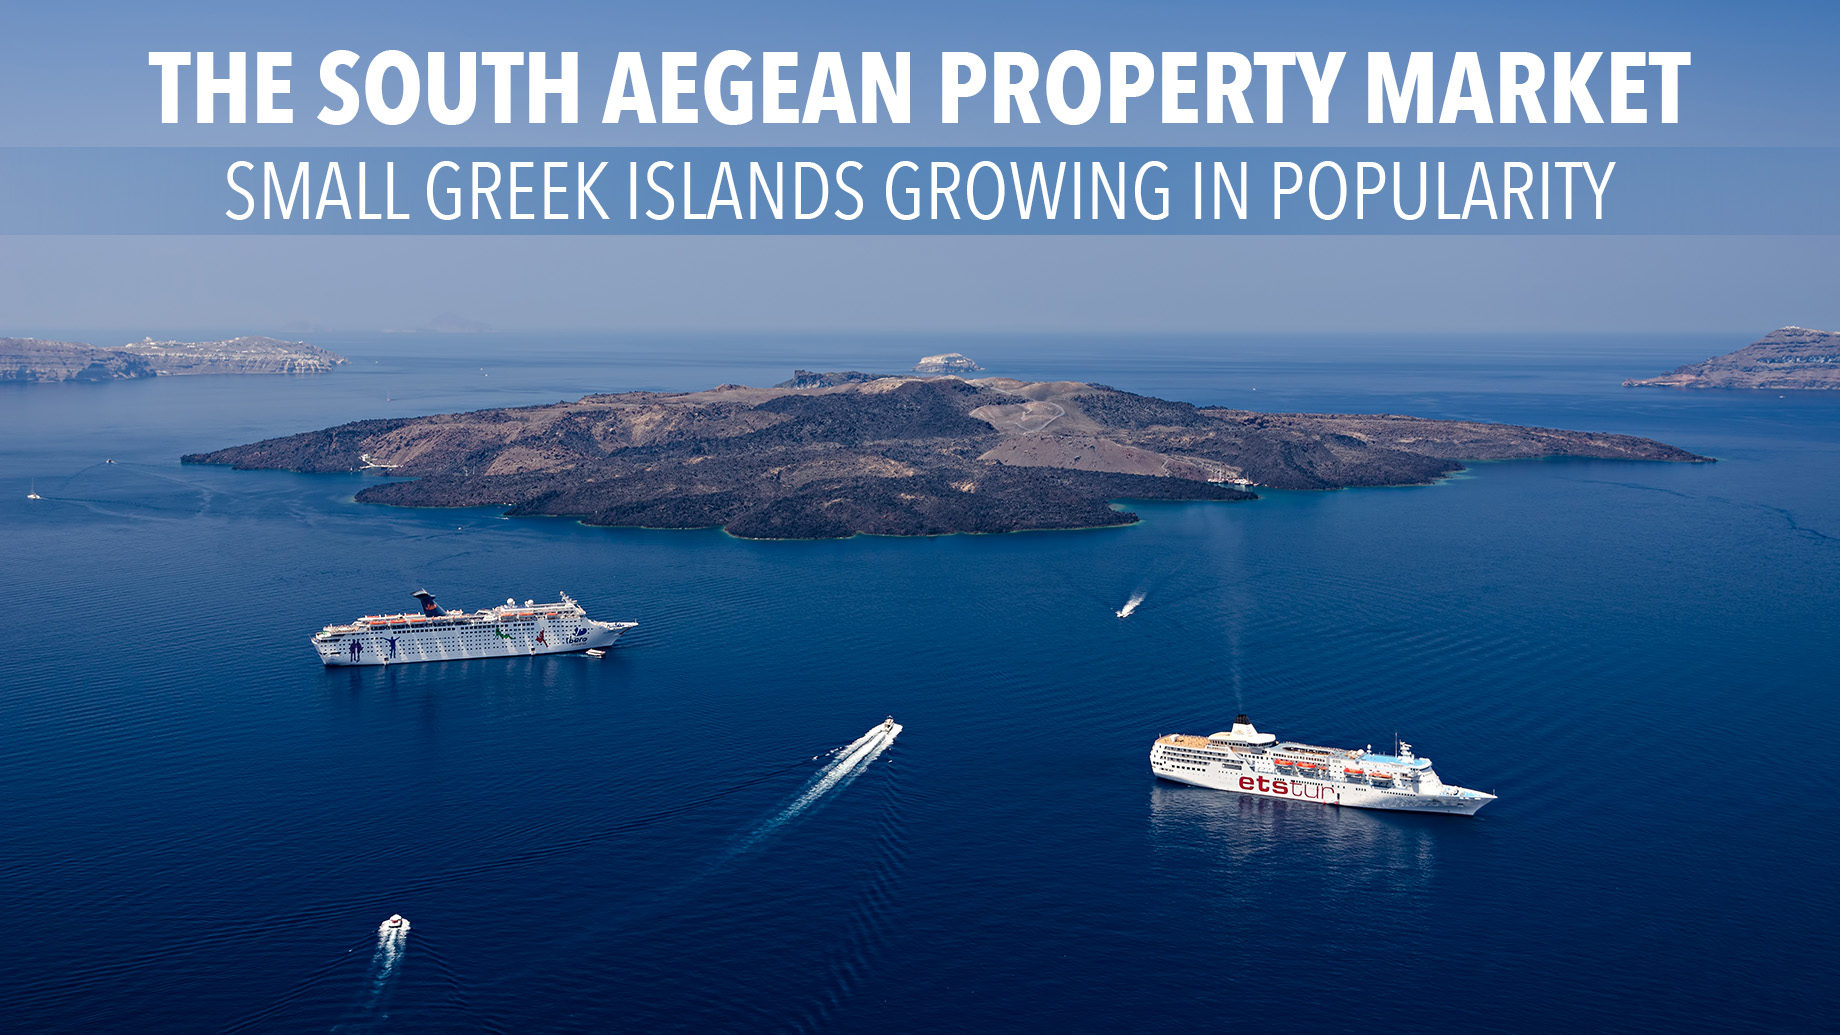 The South Aegean Property Market – Small Greek Islands Growing in Popularity